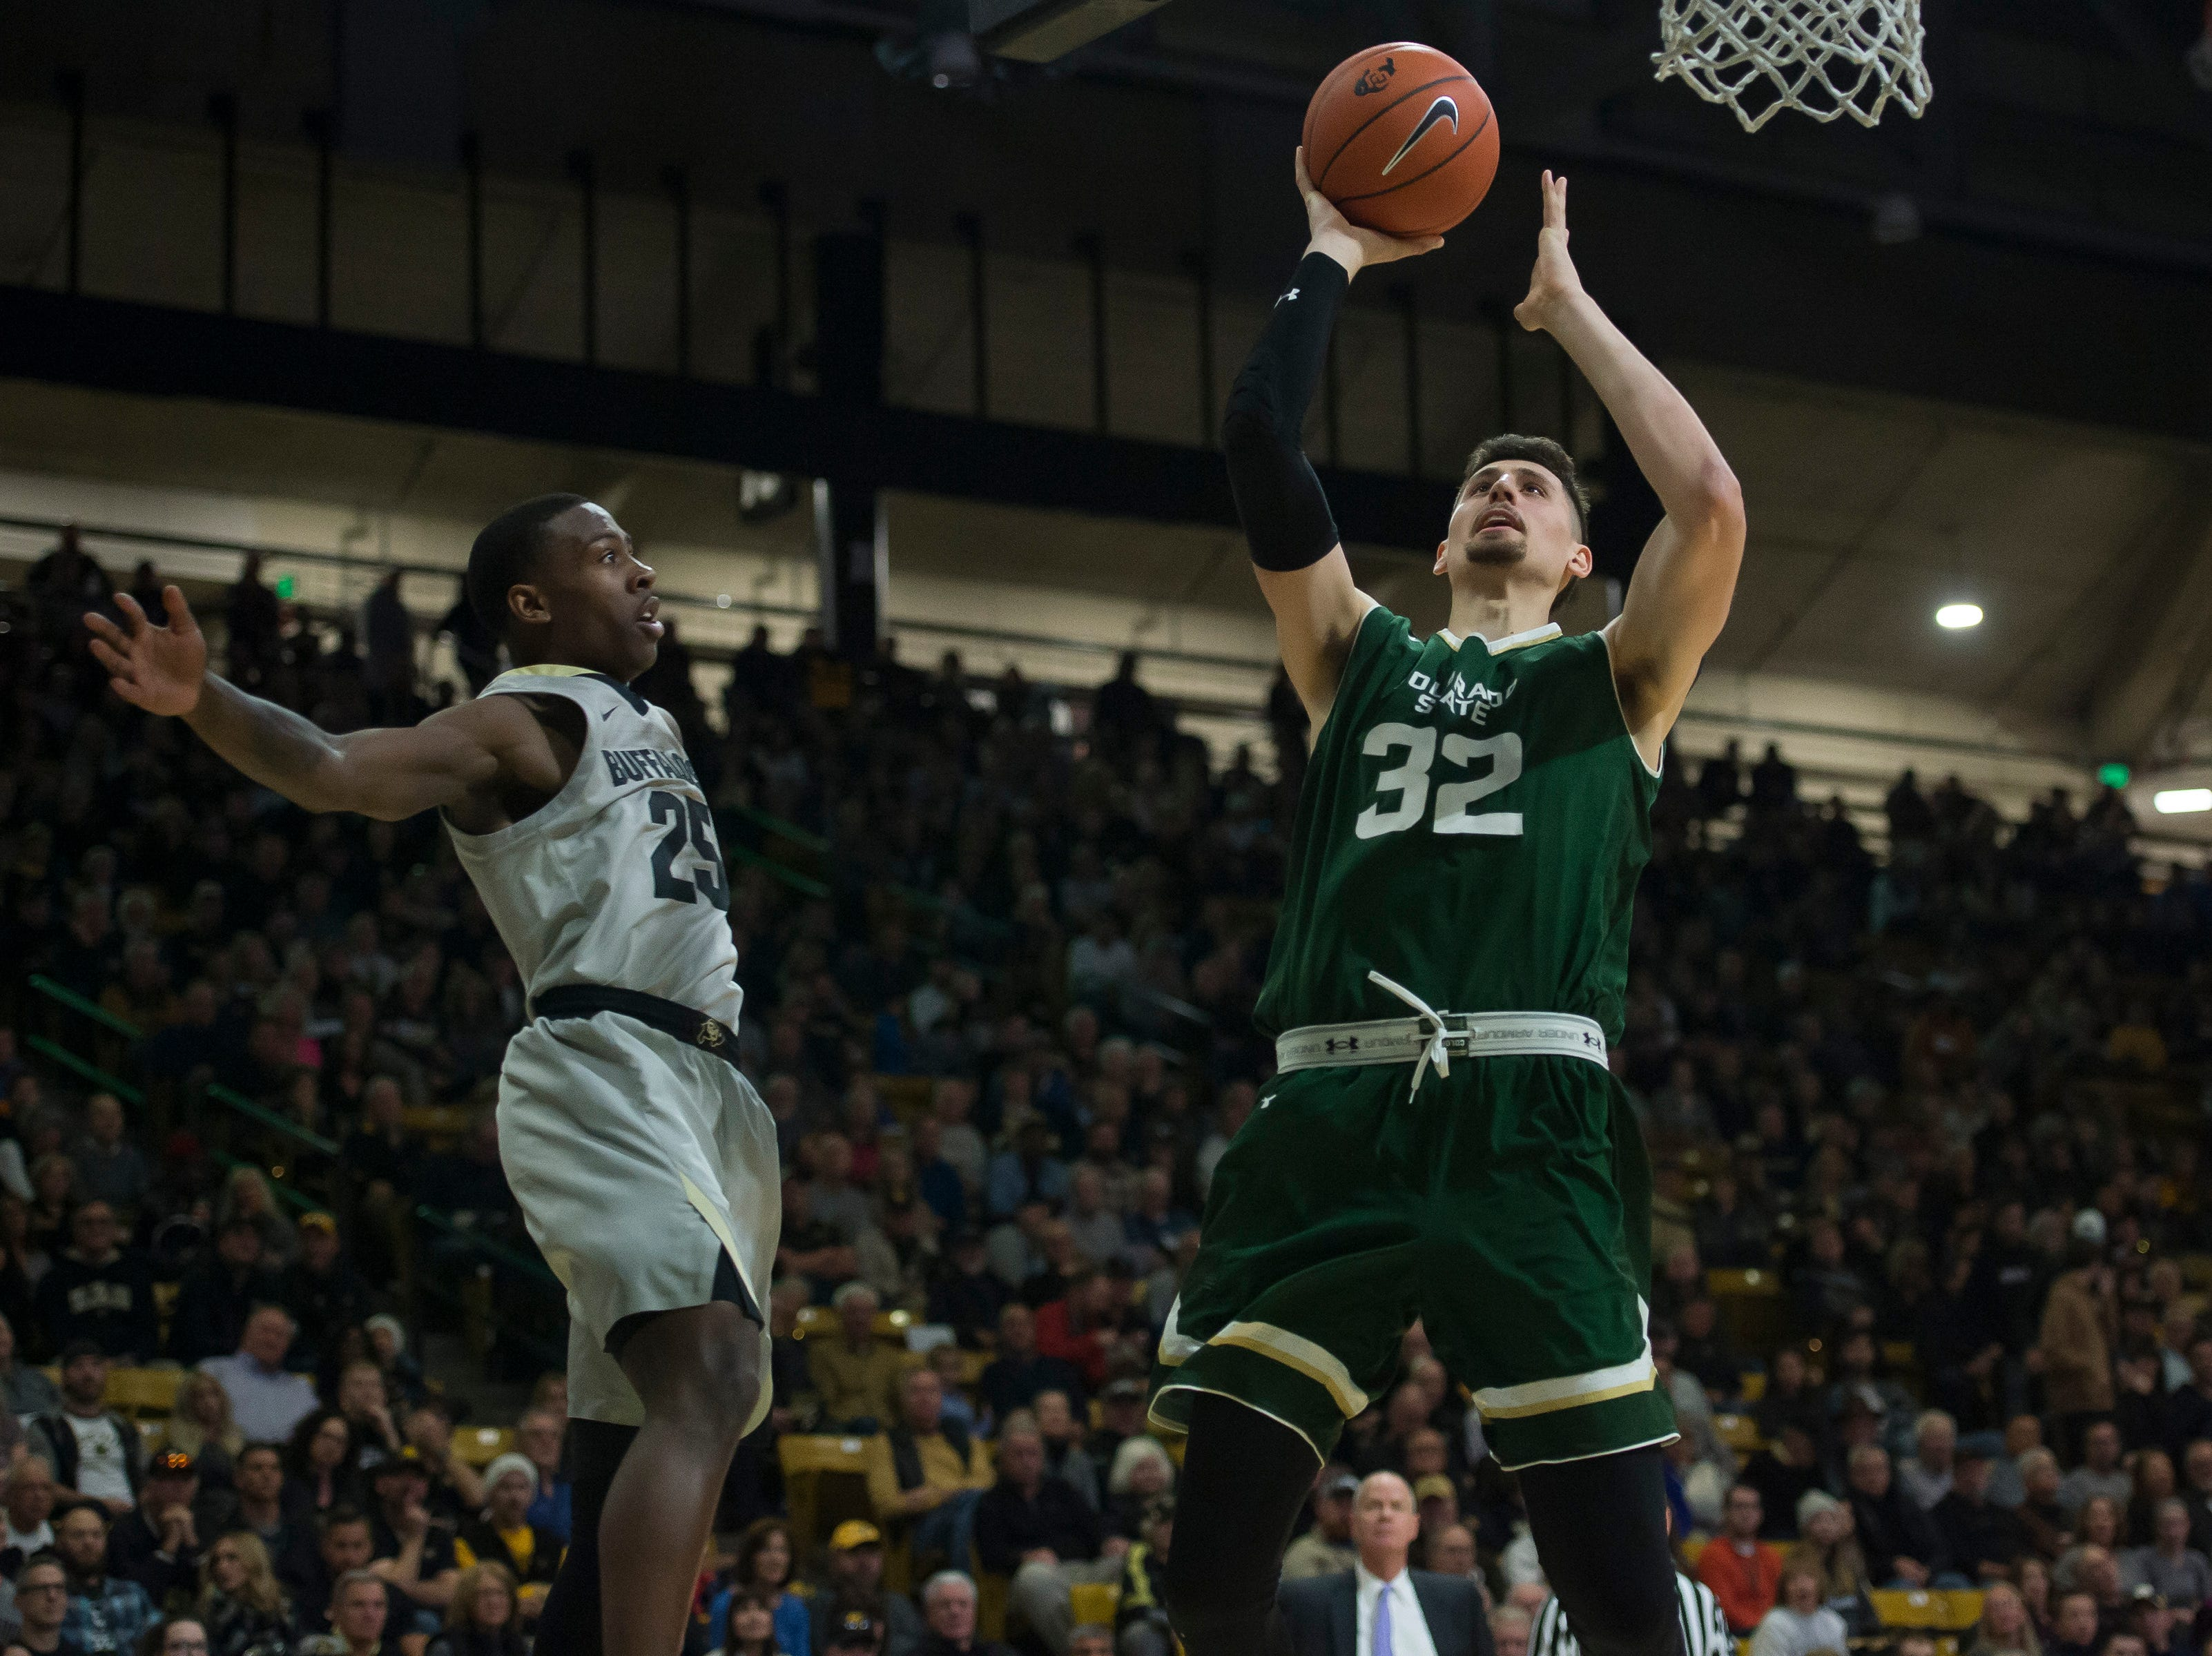 Colorado State University junior forward Nico Carvacho (32) goes for a layup during a game against the University of Colorado on Saturday, Dec. 1, 2018, at the CU Event Center in Boulder, Colo.